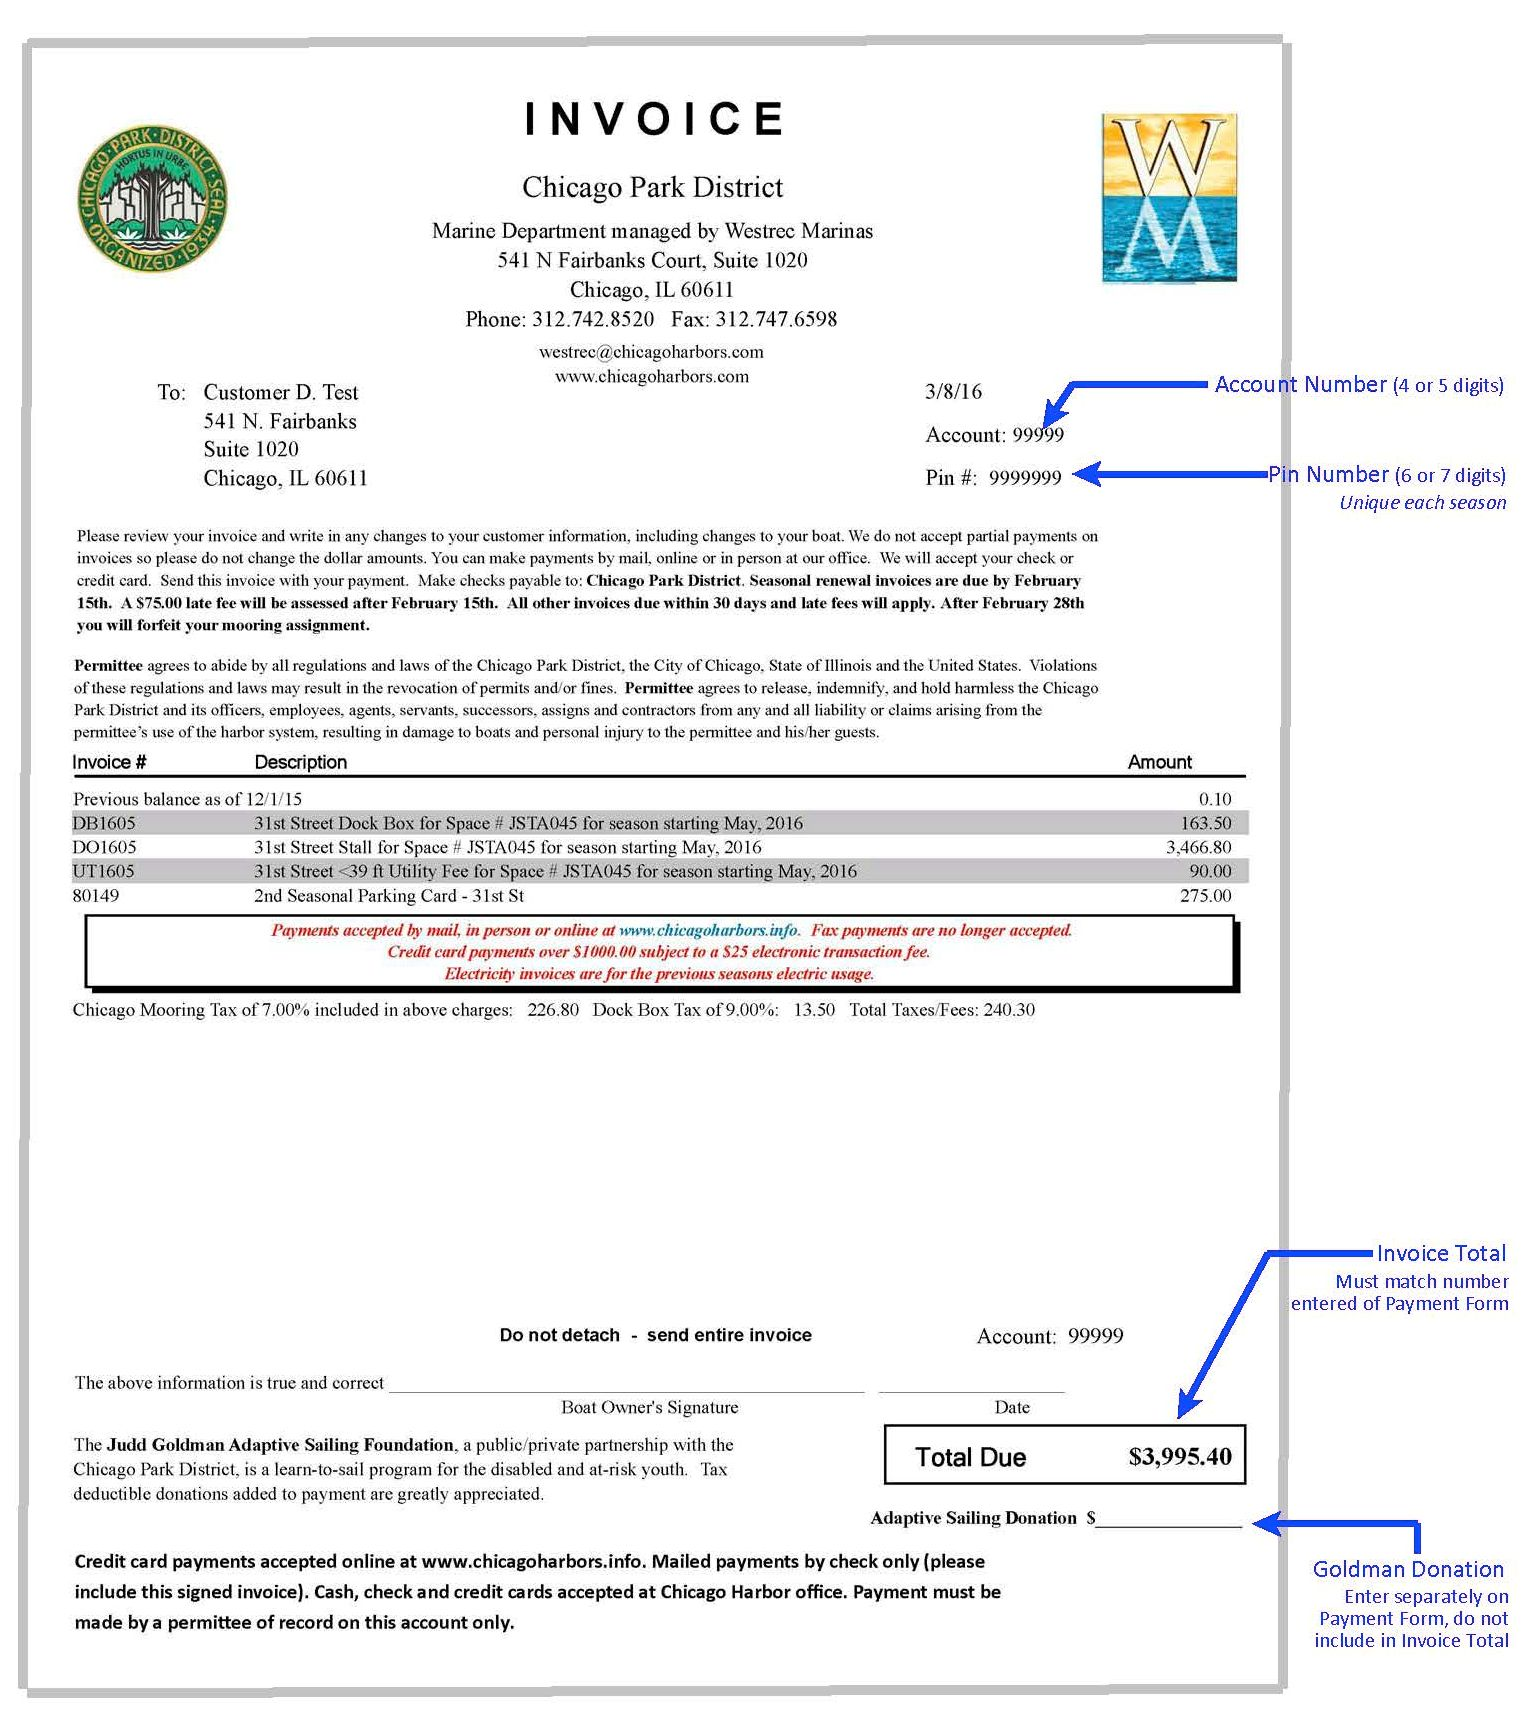 massachusetts form 1 instructions 2016